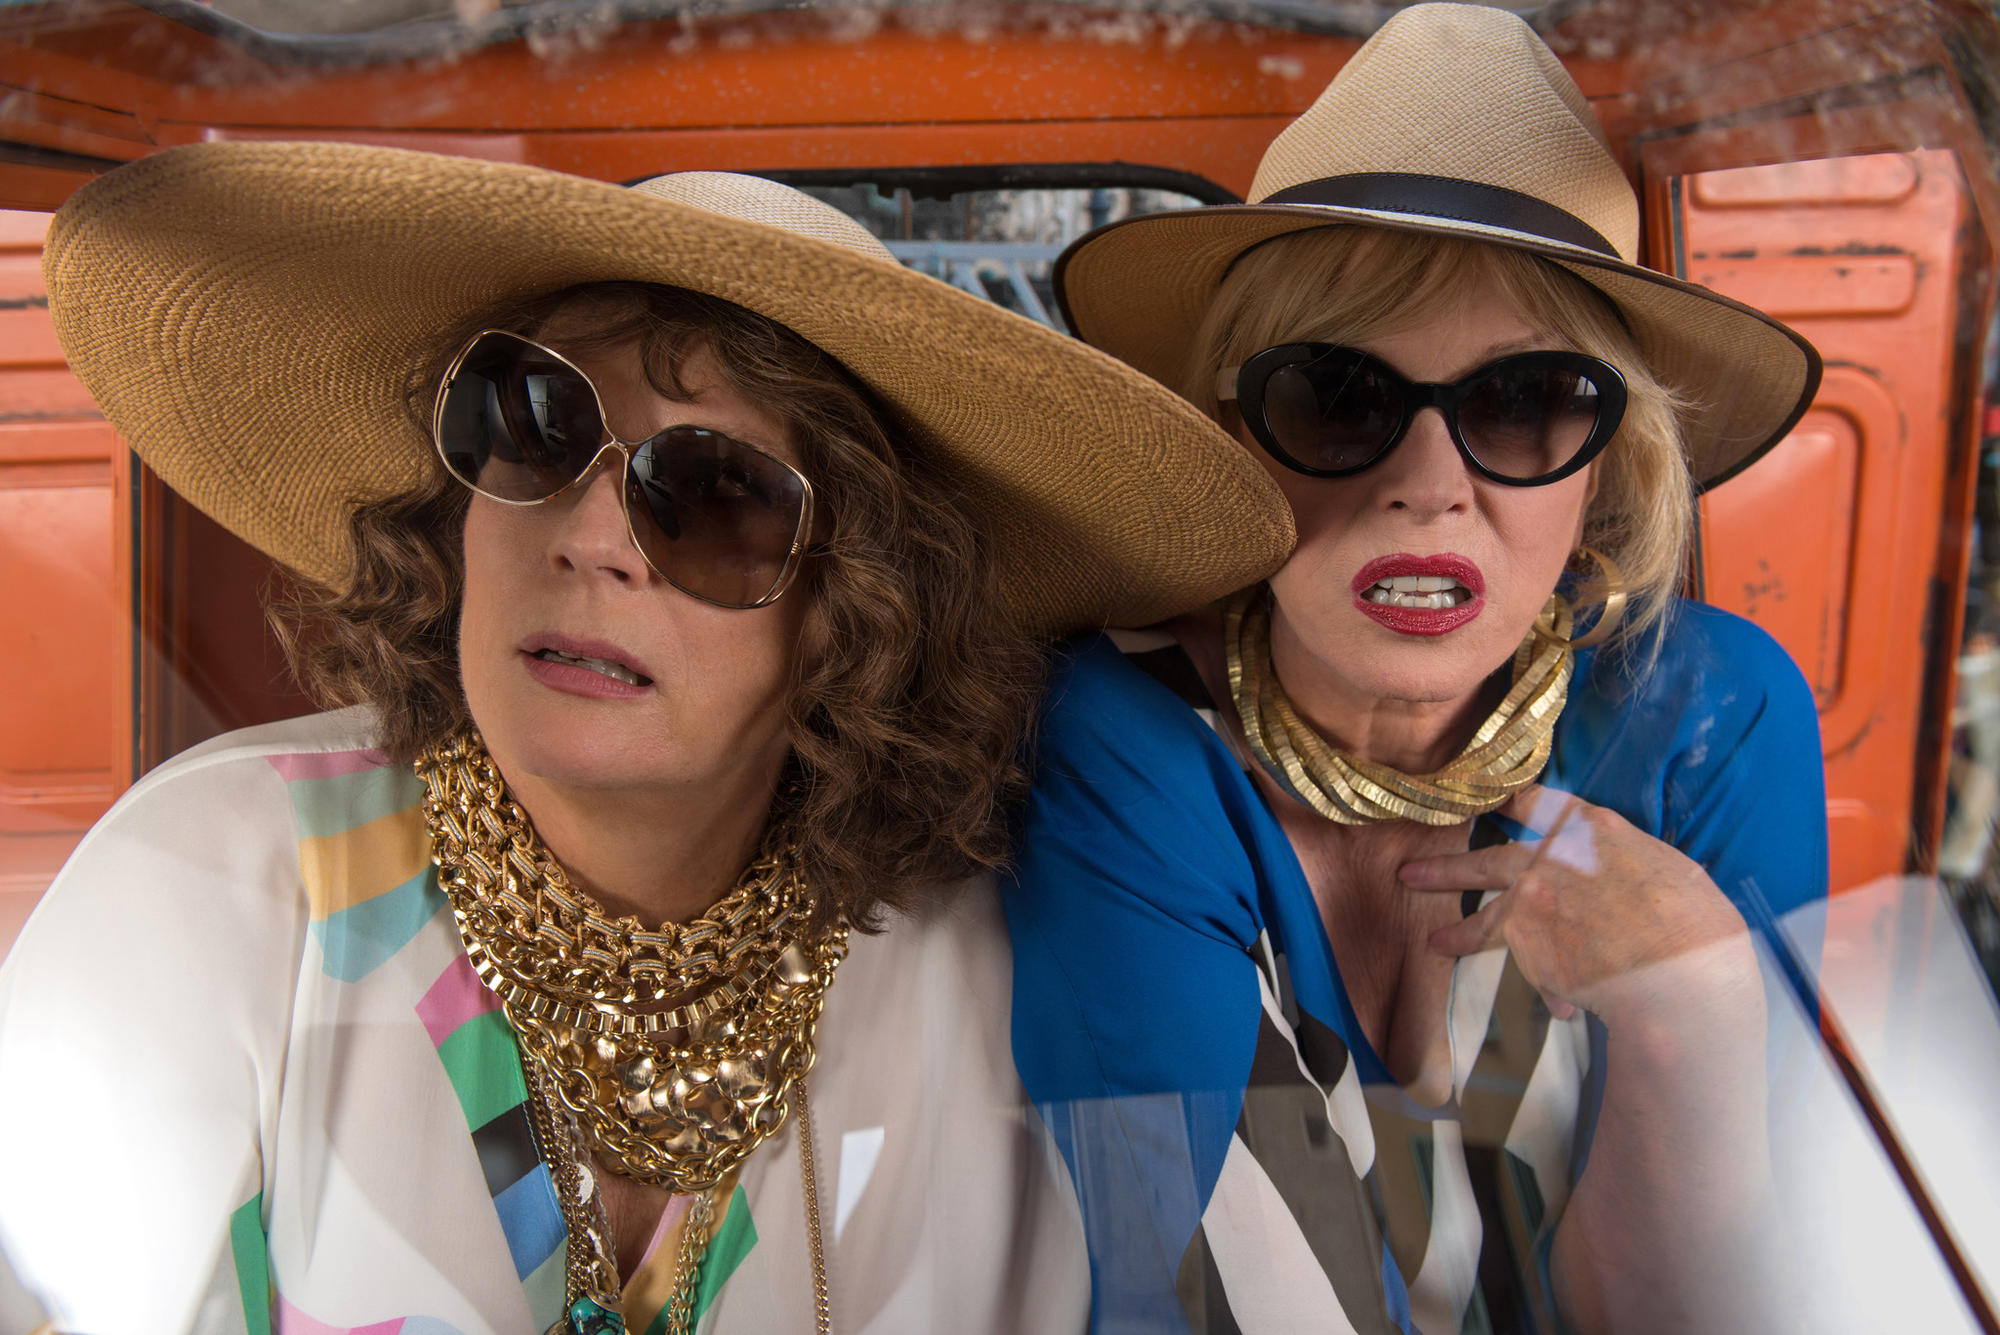 Joanna Lumley, left, as Patsy and Jennifer Saunders as Edina in 'Absolutely Fabulous.'